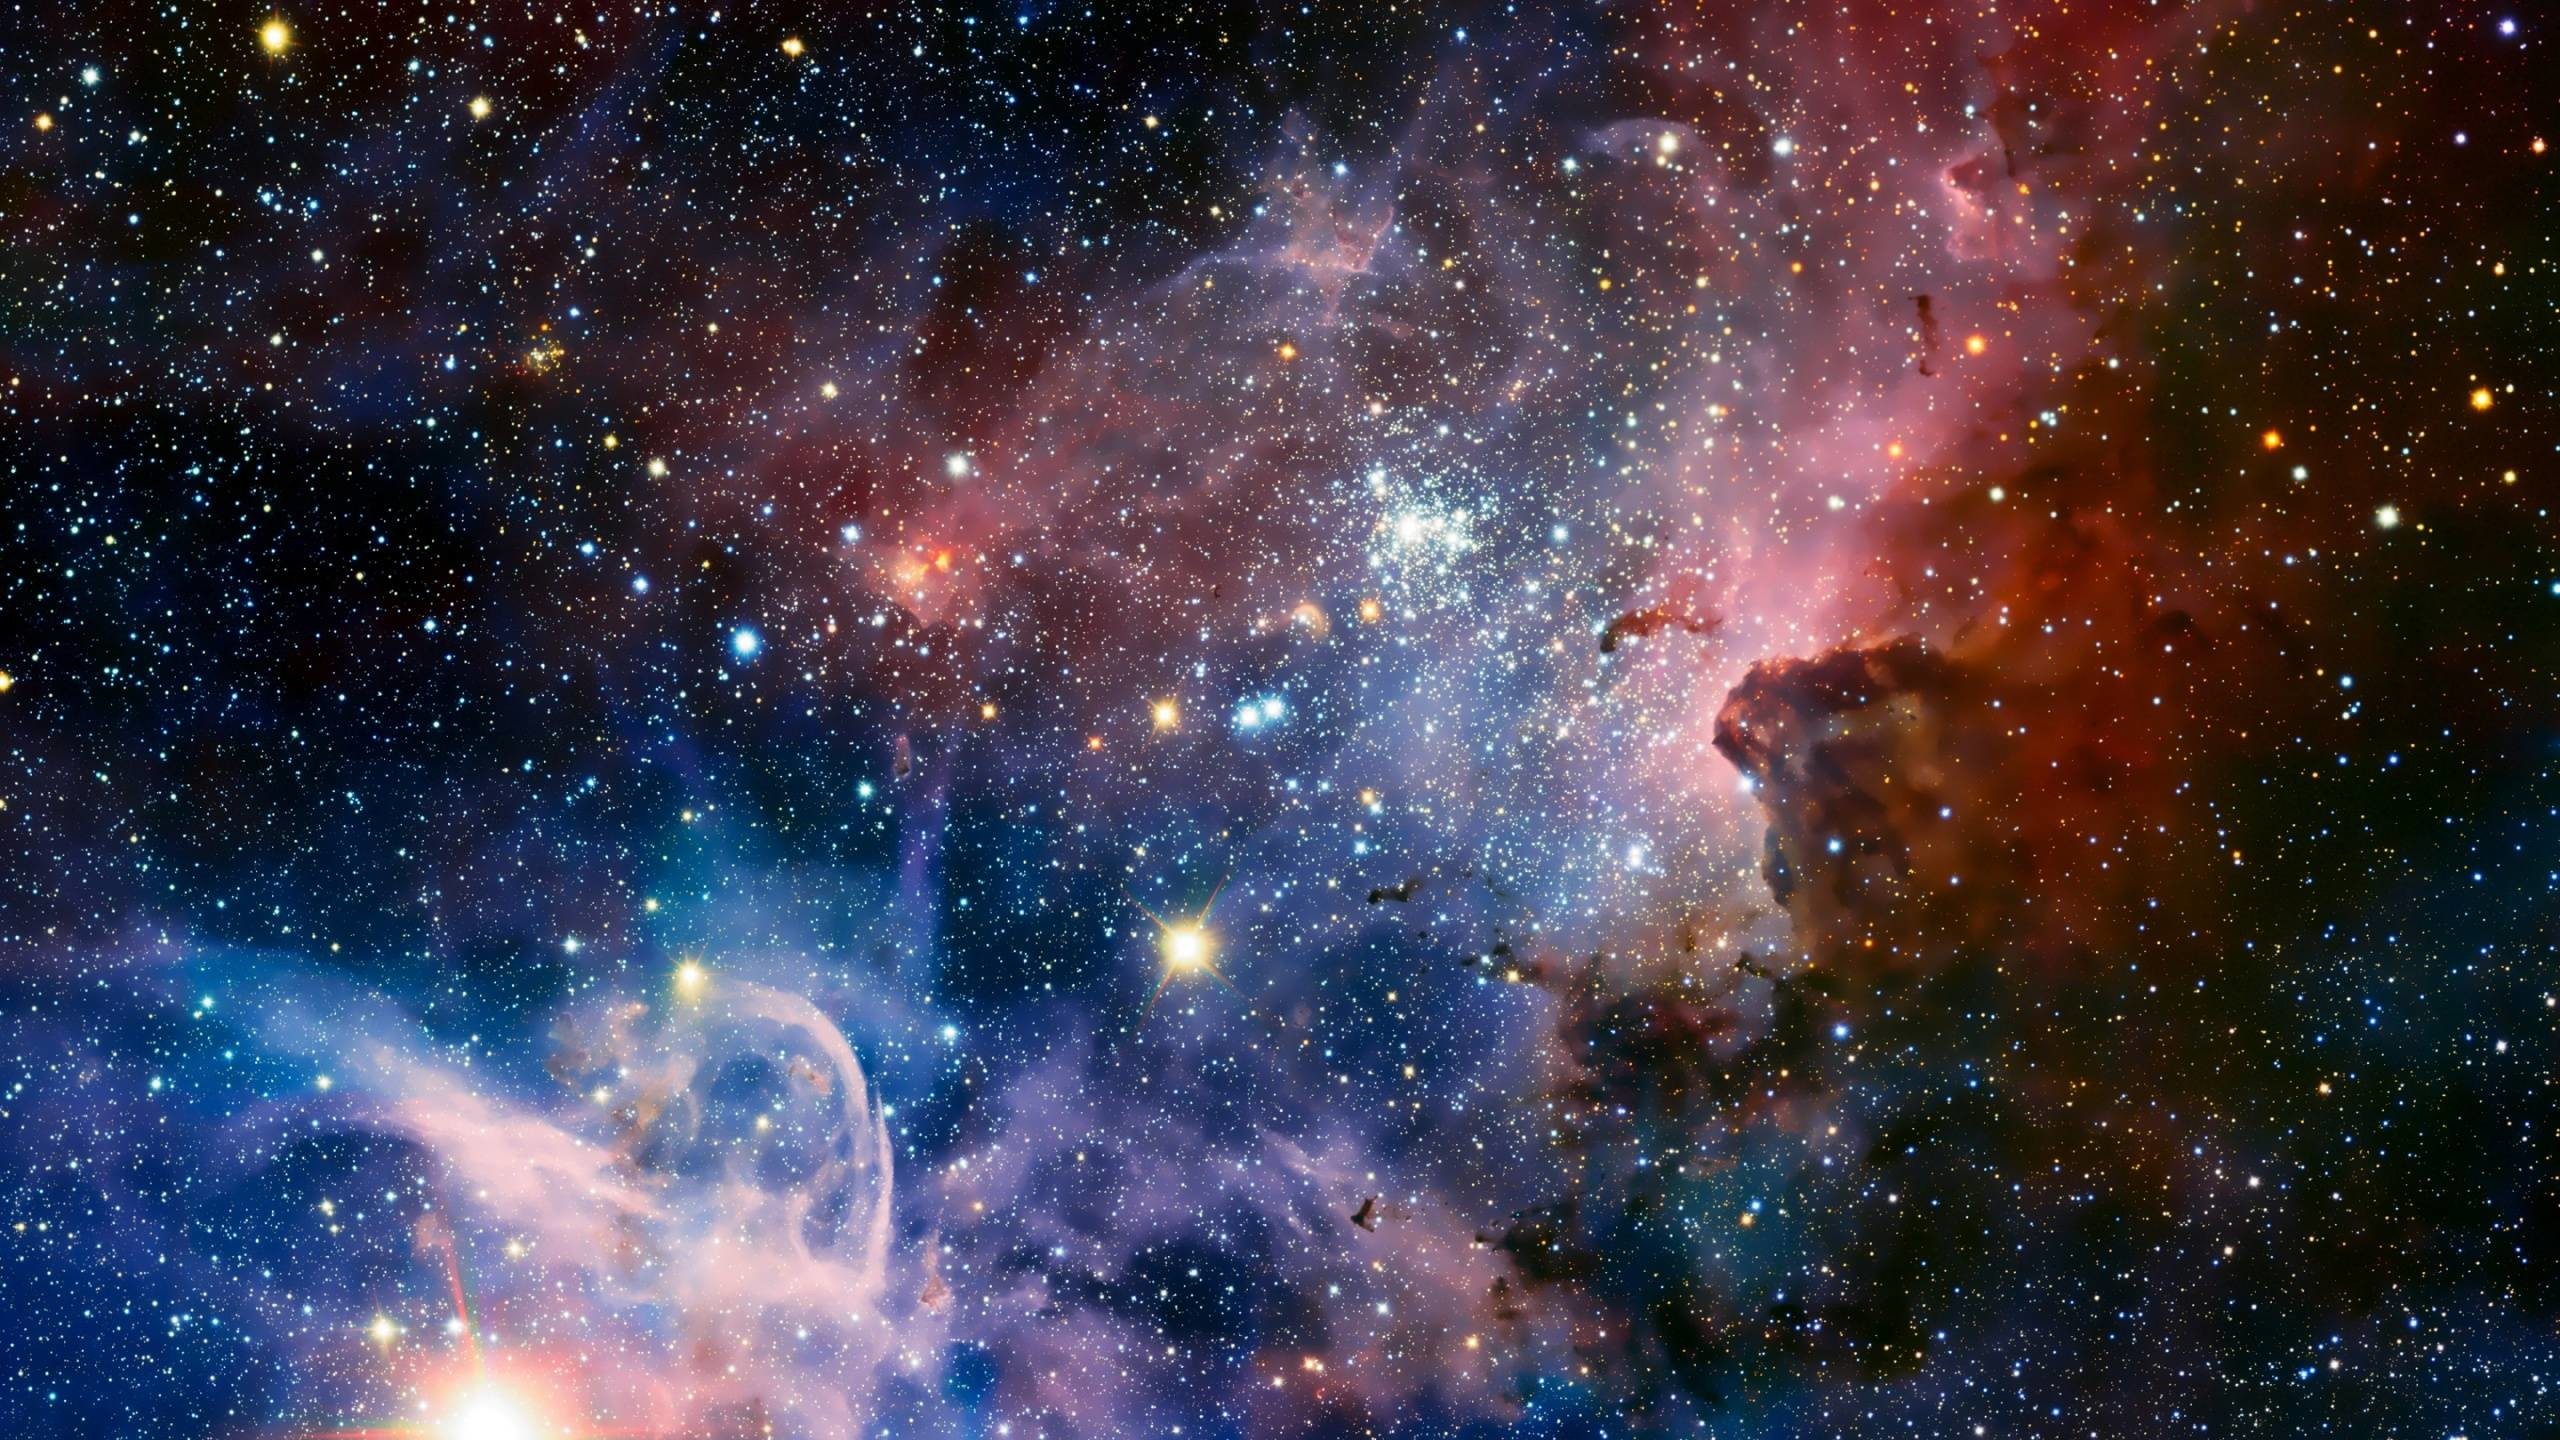 Backgrounds space 70 images 2560x1440 wallpapers for cool backgrounds of space with stars voltagebd Images